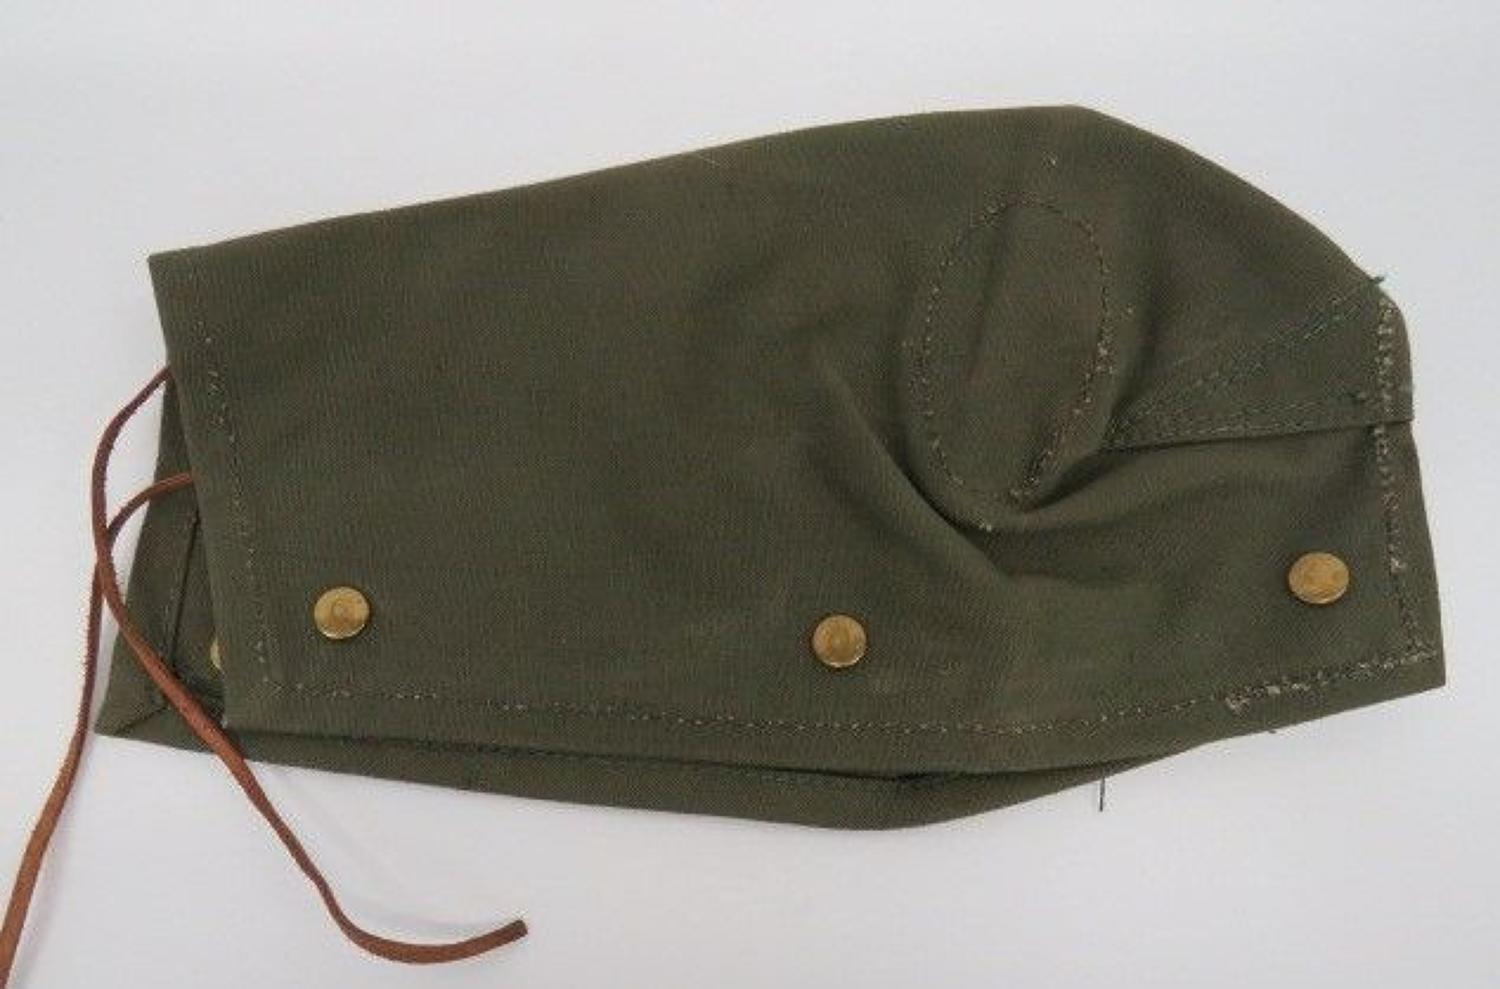 British Rifle Breech Cover